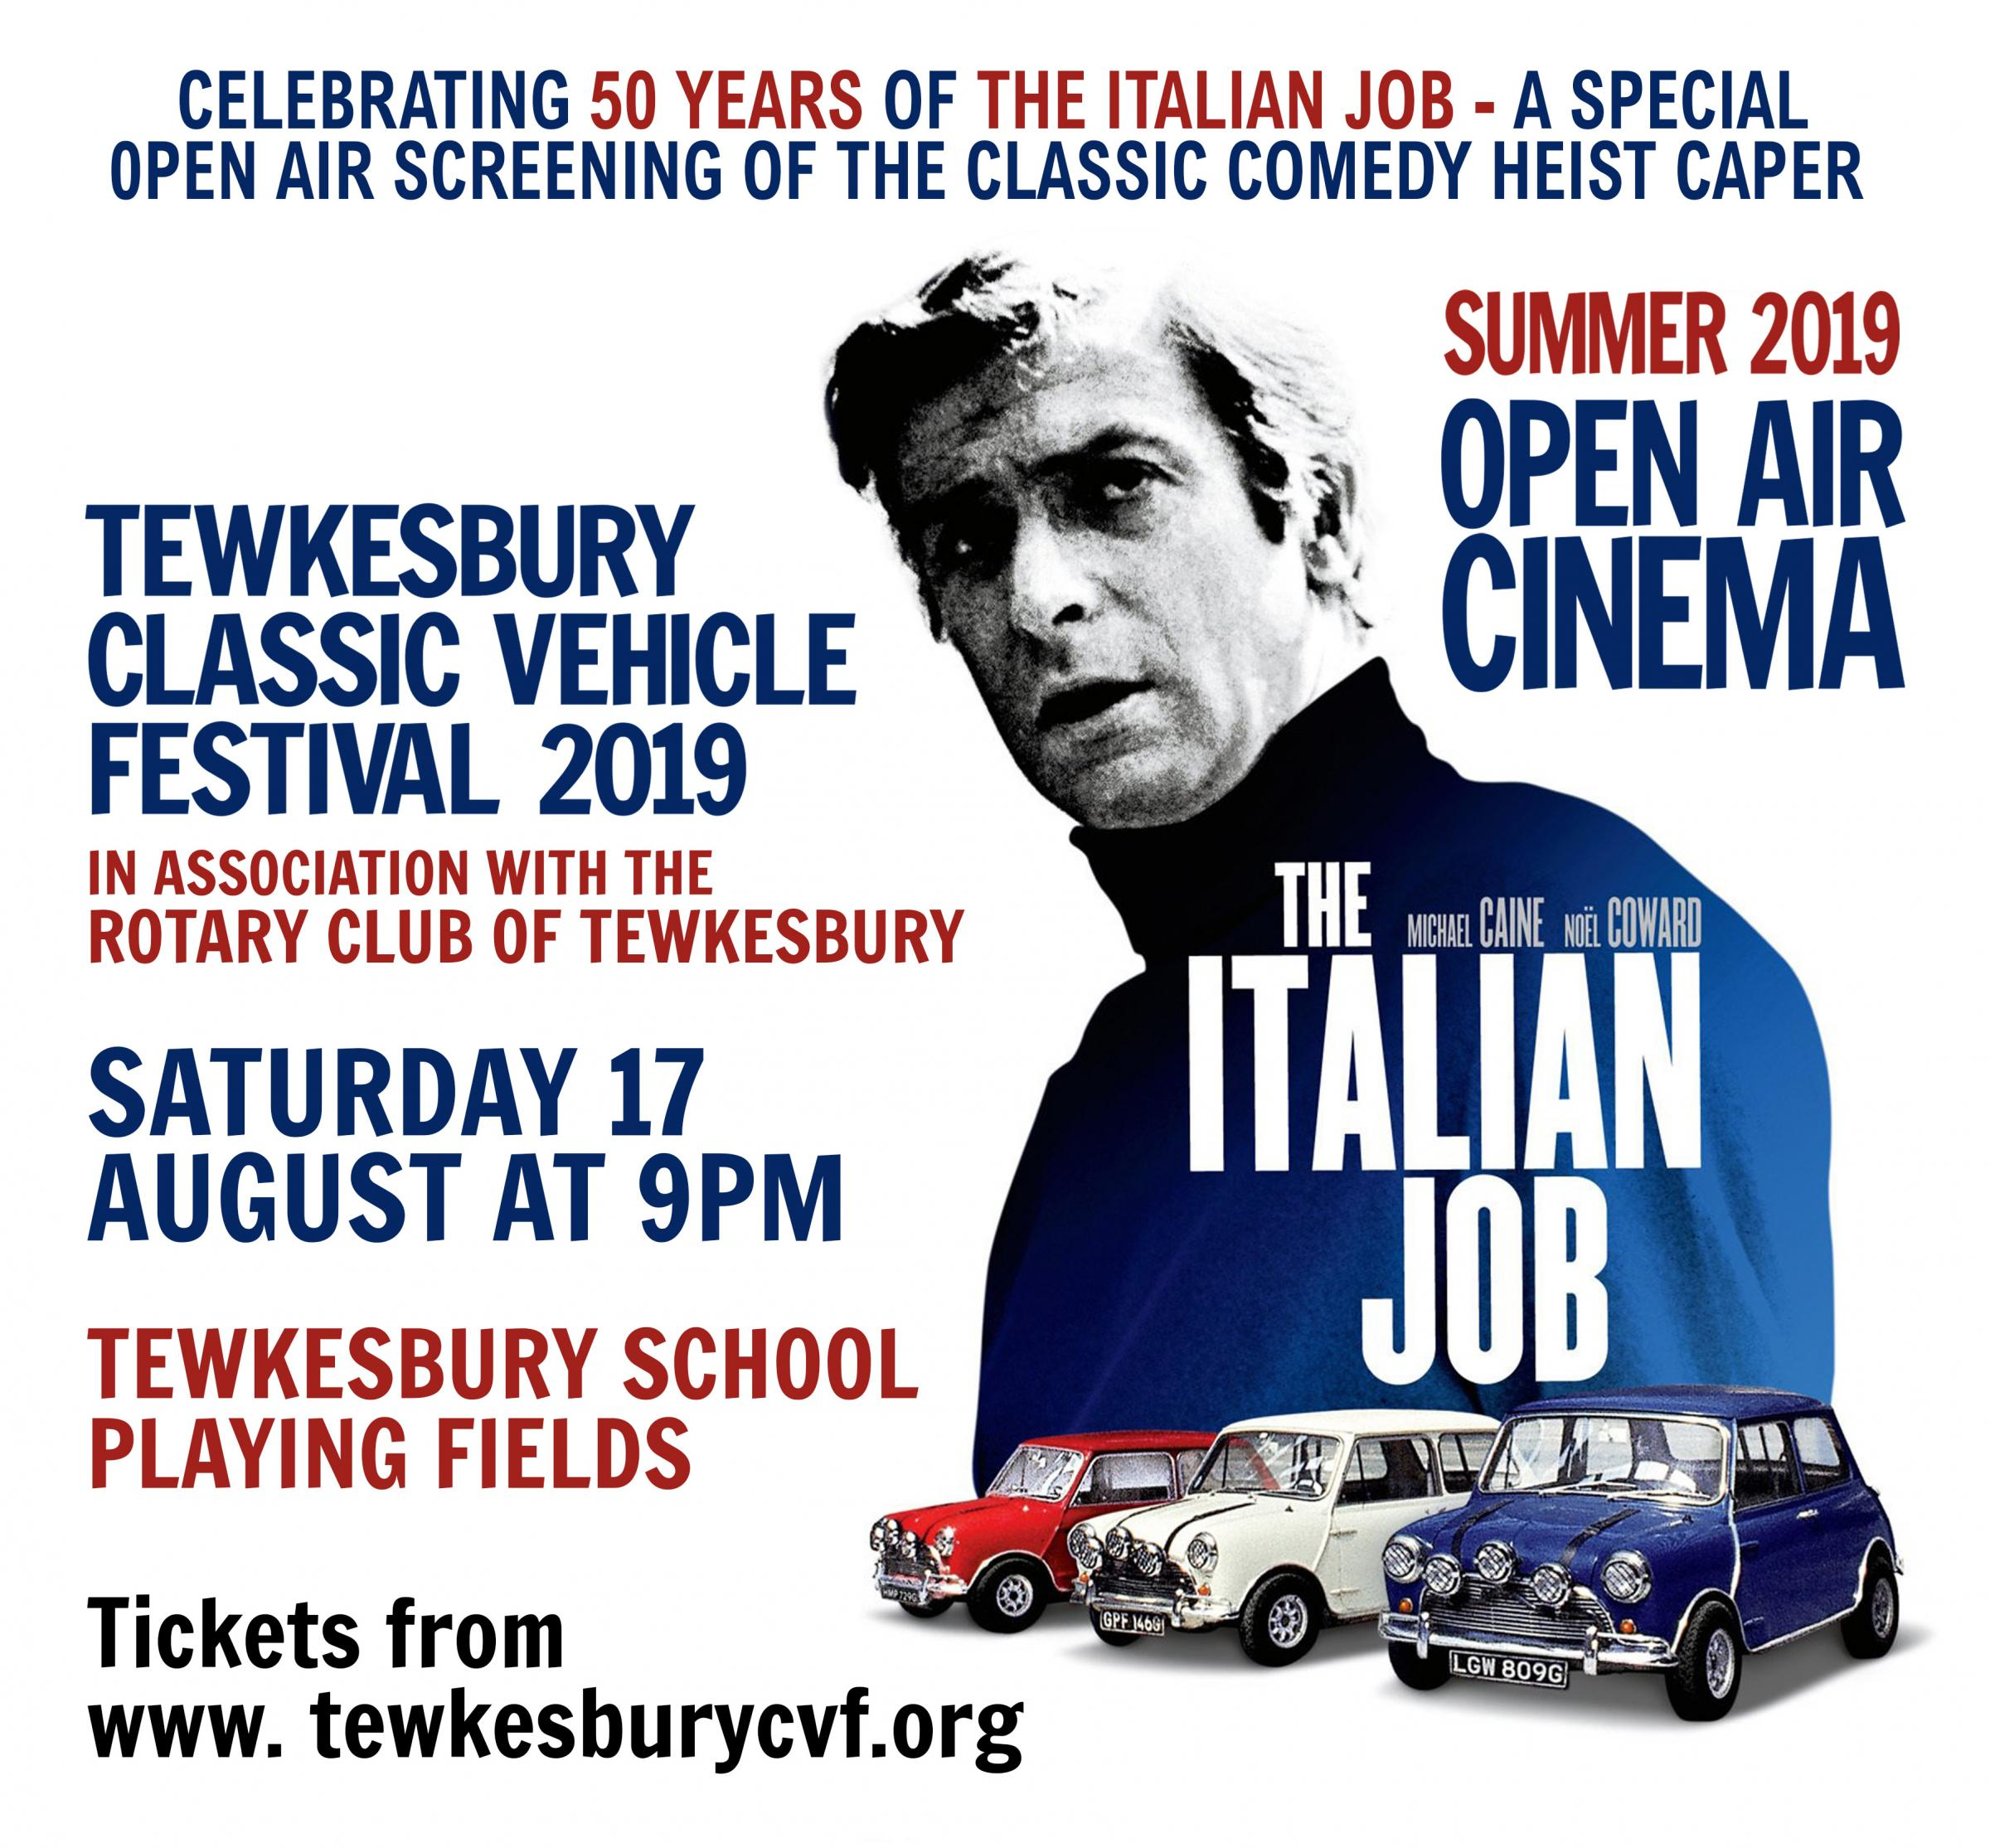 The Rotary Club of Tewkesbury Presents:  THE ITALIAN JOB